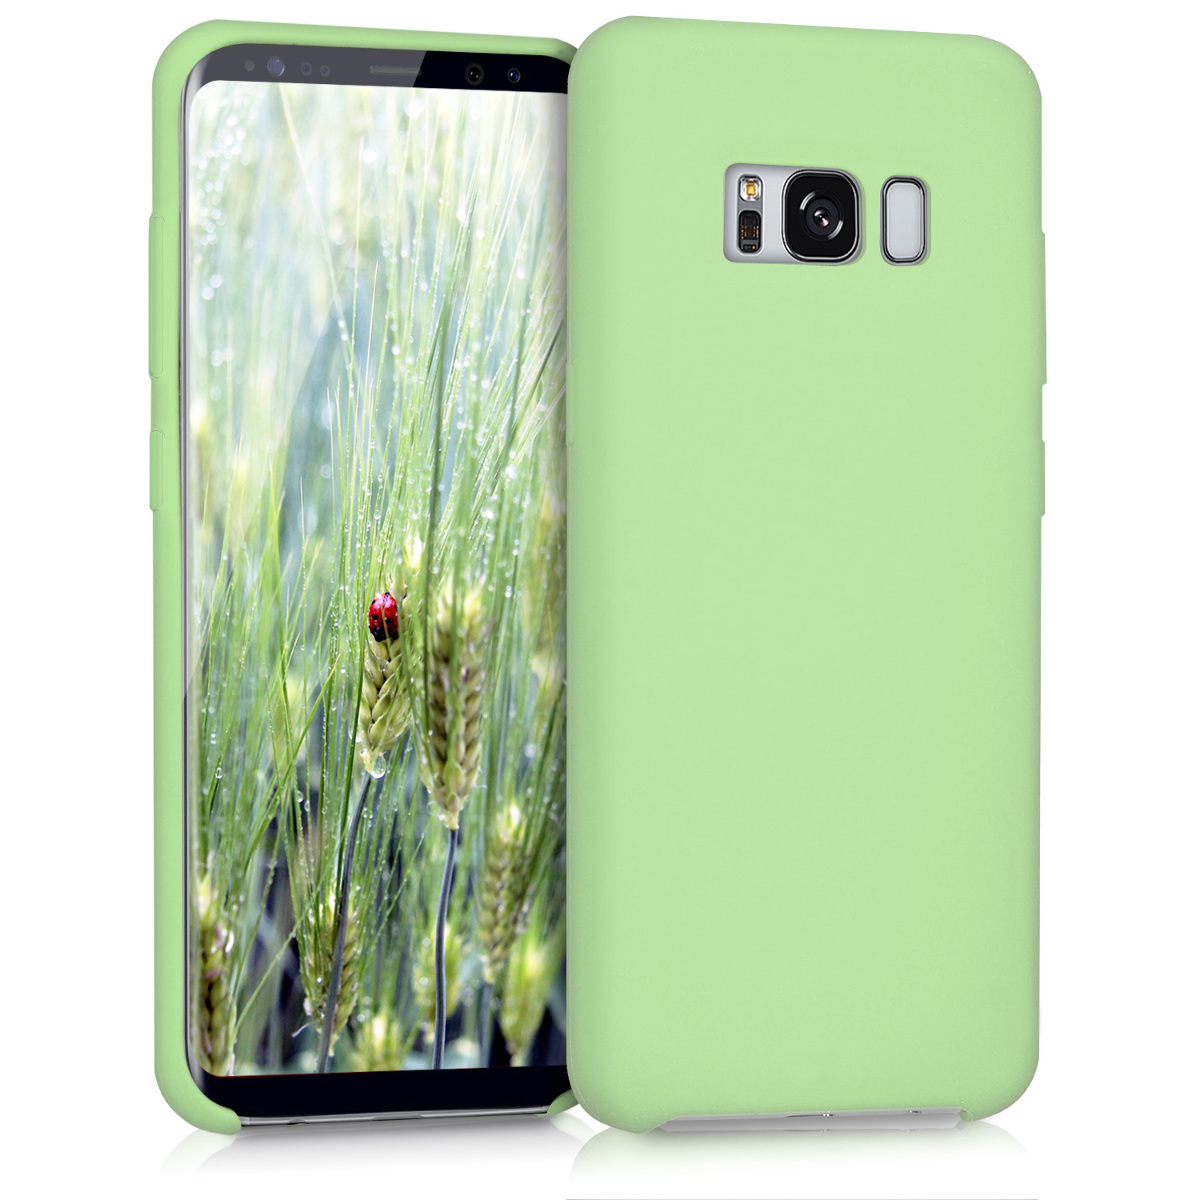 KW TPU Θήκη Σιλικόνης Samsung Galaxy S8 - Soft Flexible Rubber Protective Cover - Mint (41853.71)